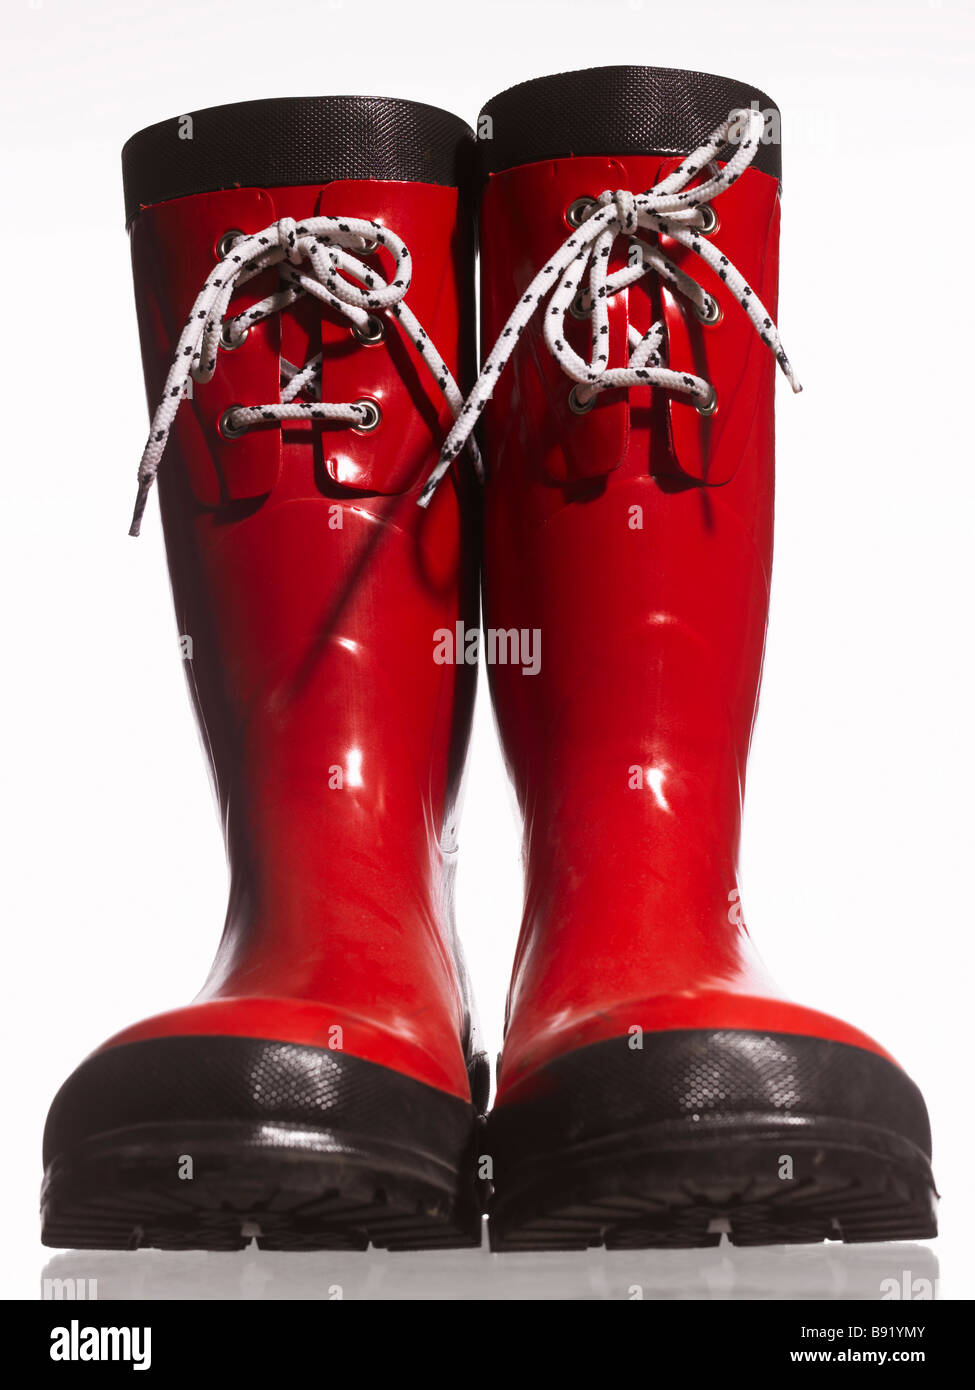 Red rubber boots. - Stock Image